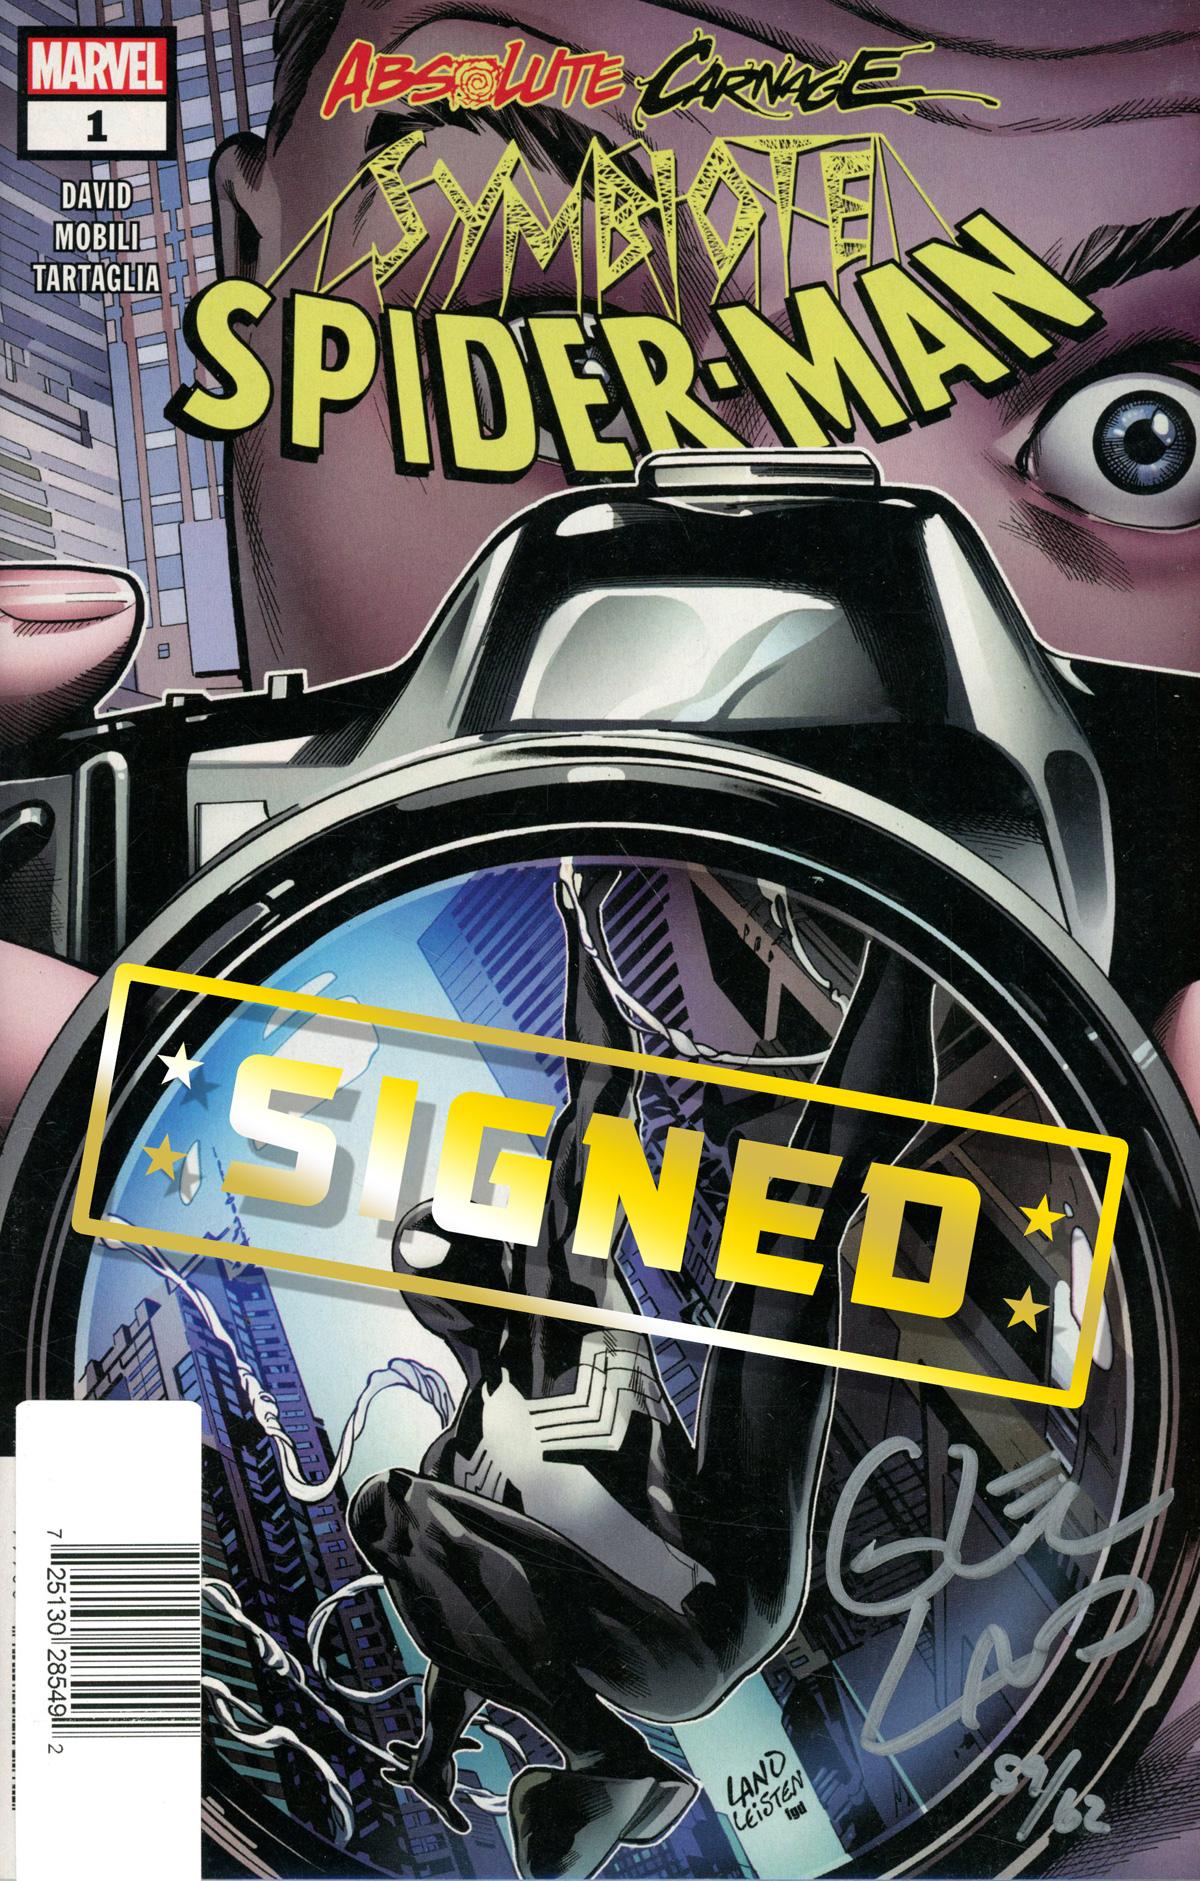 Absolute Carnage Symbiote Spider-Man #1 Cover E DF Ultra-Limited Symbiote Silver Webbing Edition Signed By Greg Land